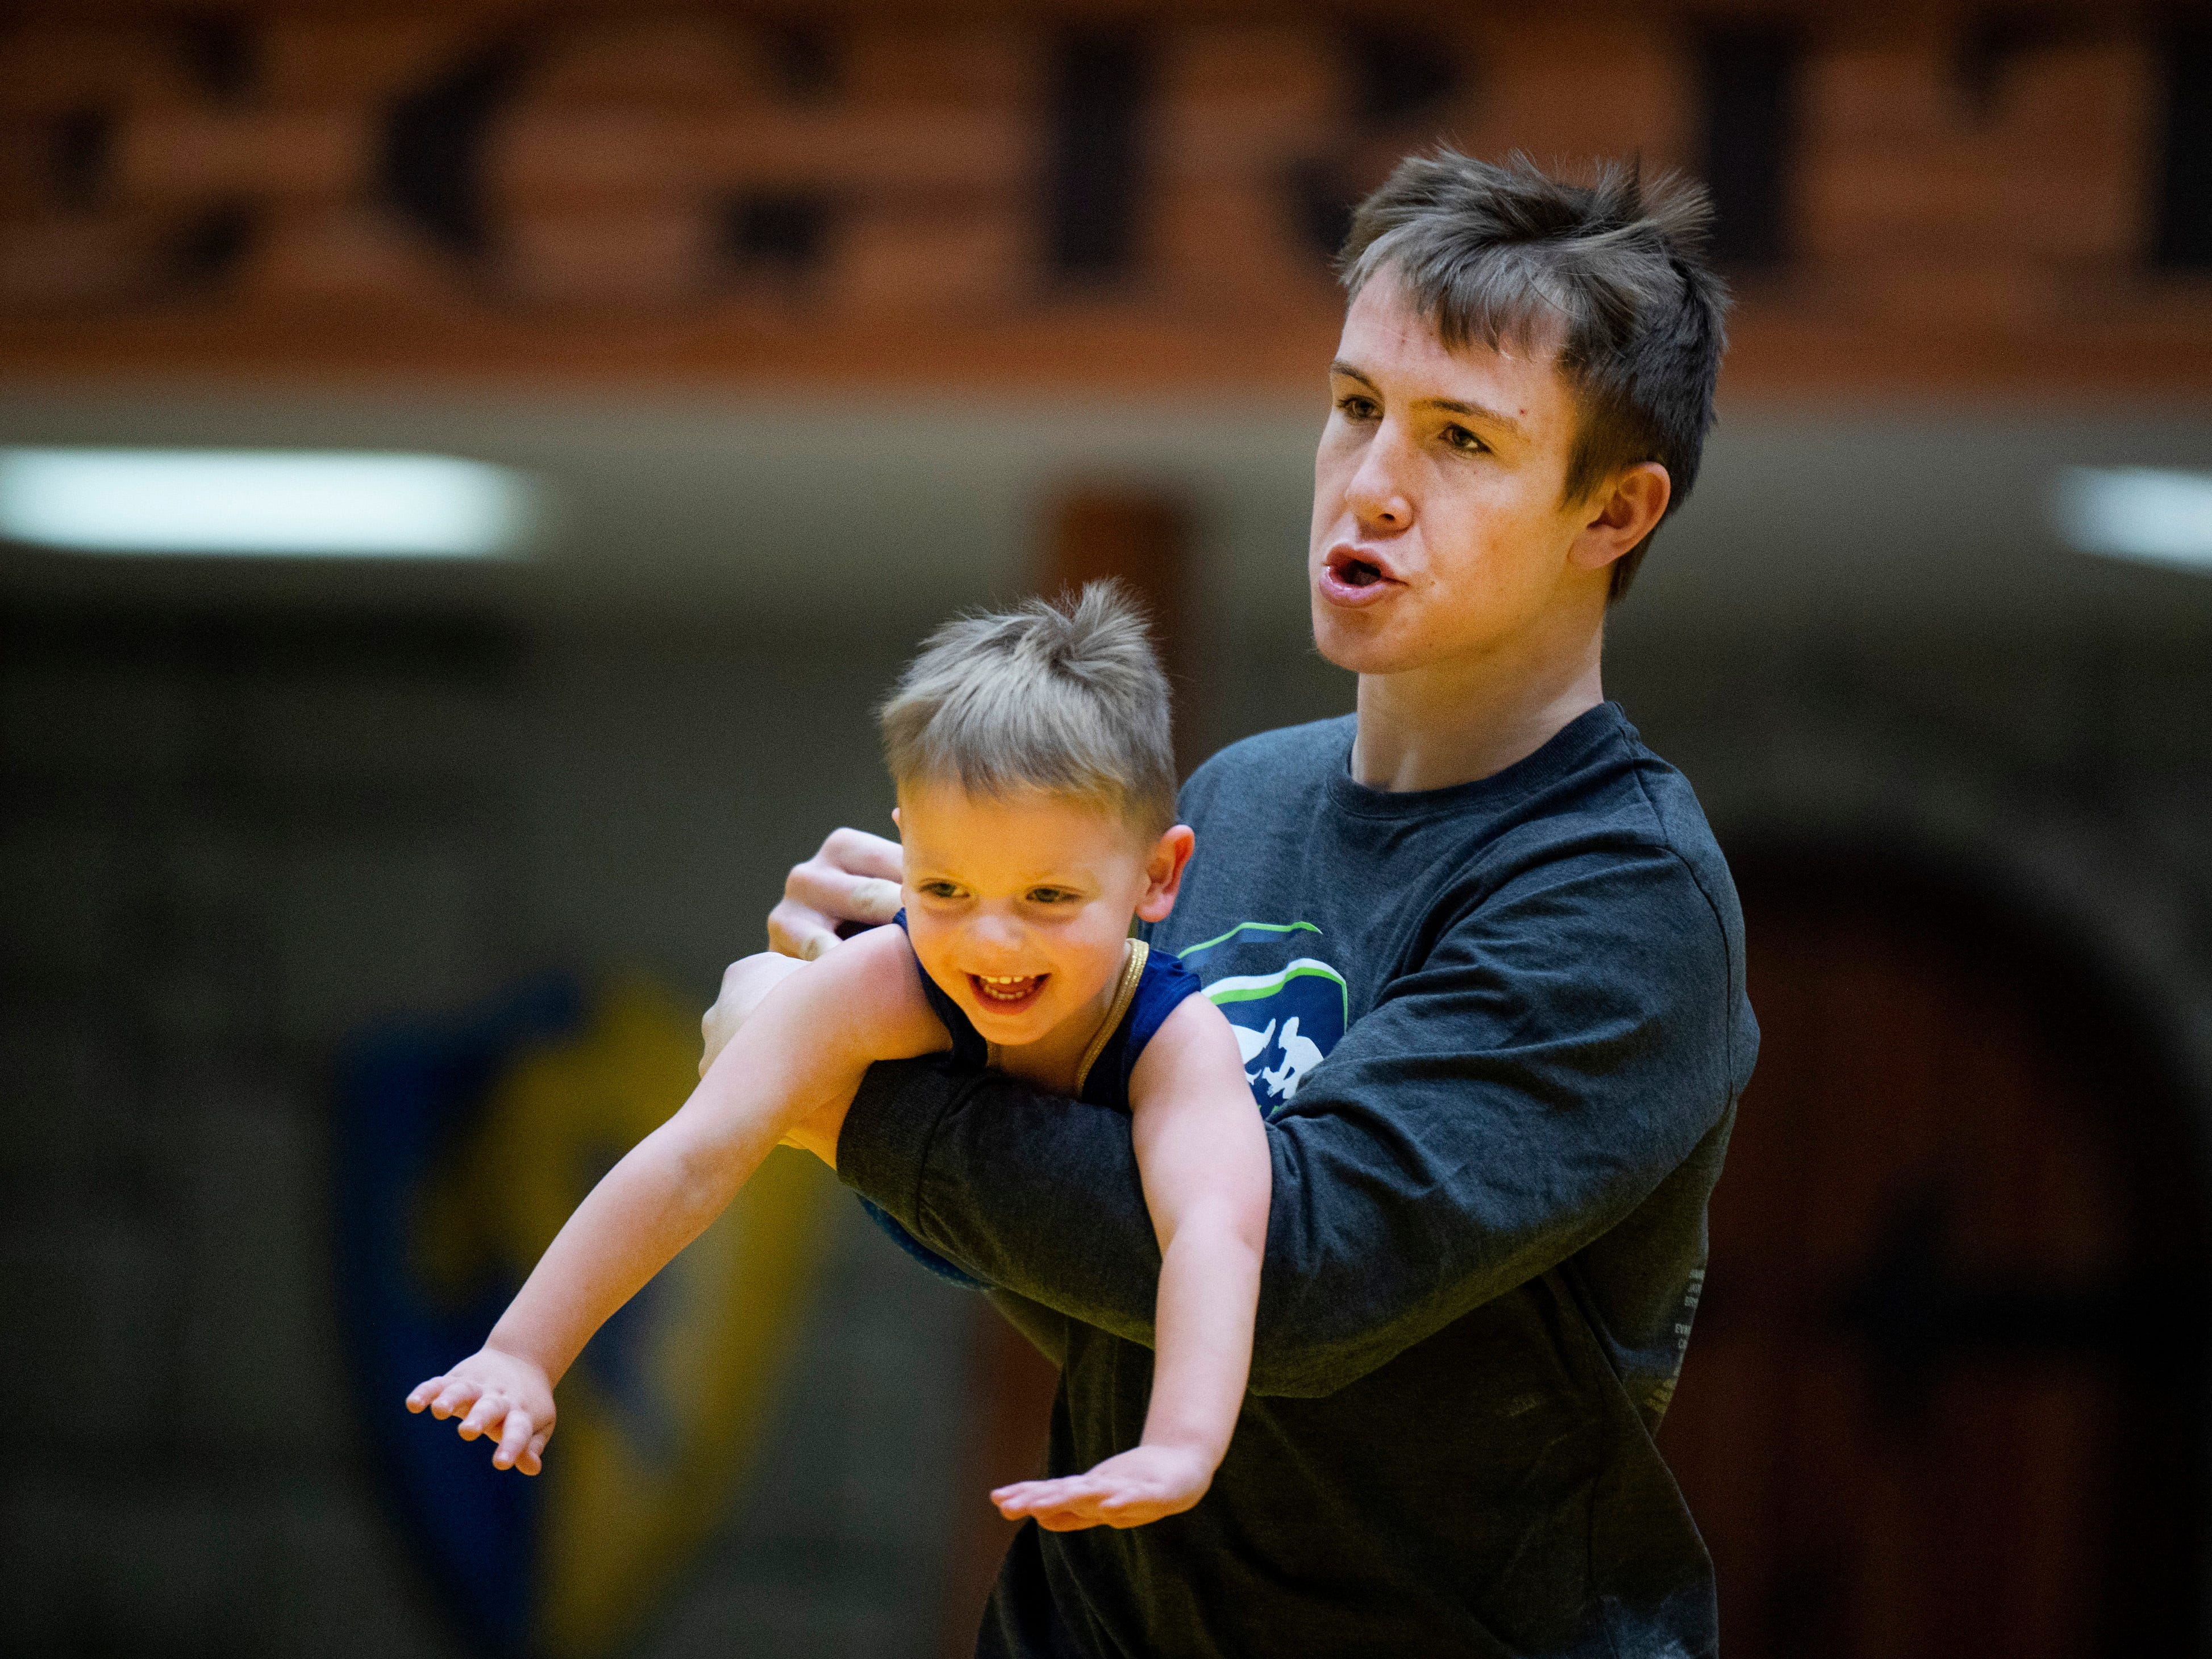 Ian Hartz takes Axel Deters, 2, for a flight around the wrestling mats at the IHSAA Sectional at Castle High School Saturday afternoon. Axel is the grandson of coach Bob Harmon and his dad, Matt Deters, was Harmon's first state champion wrestler at Castle.